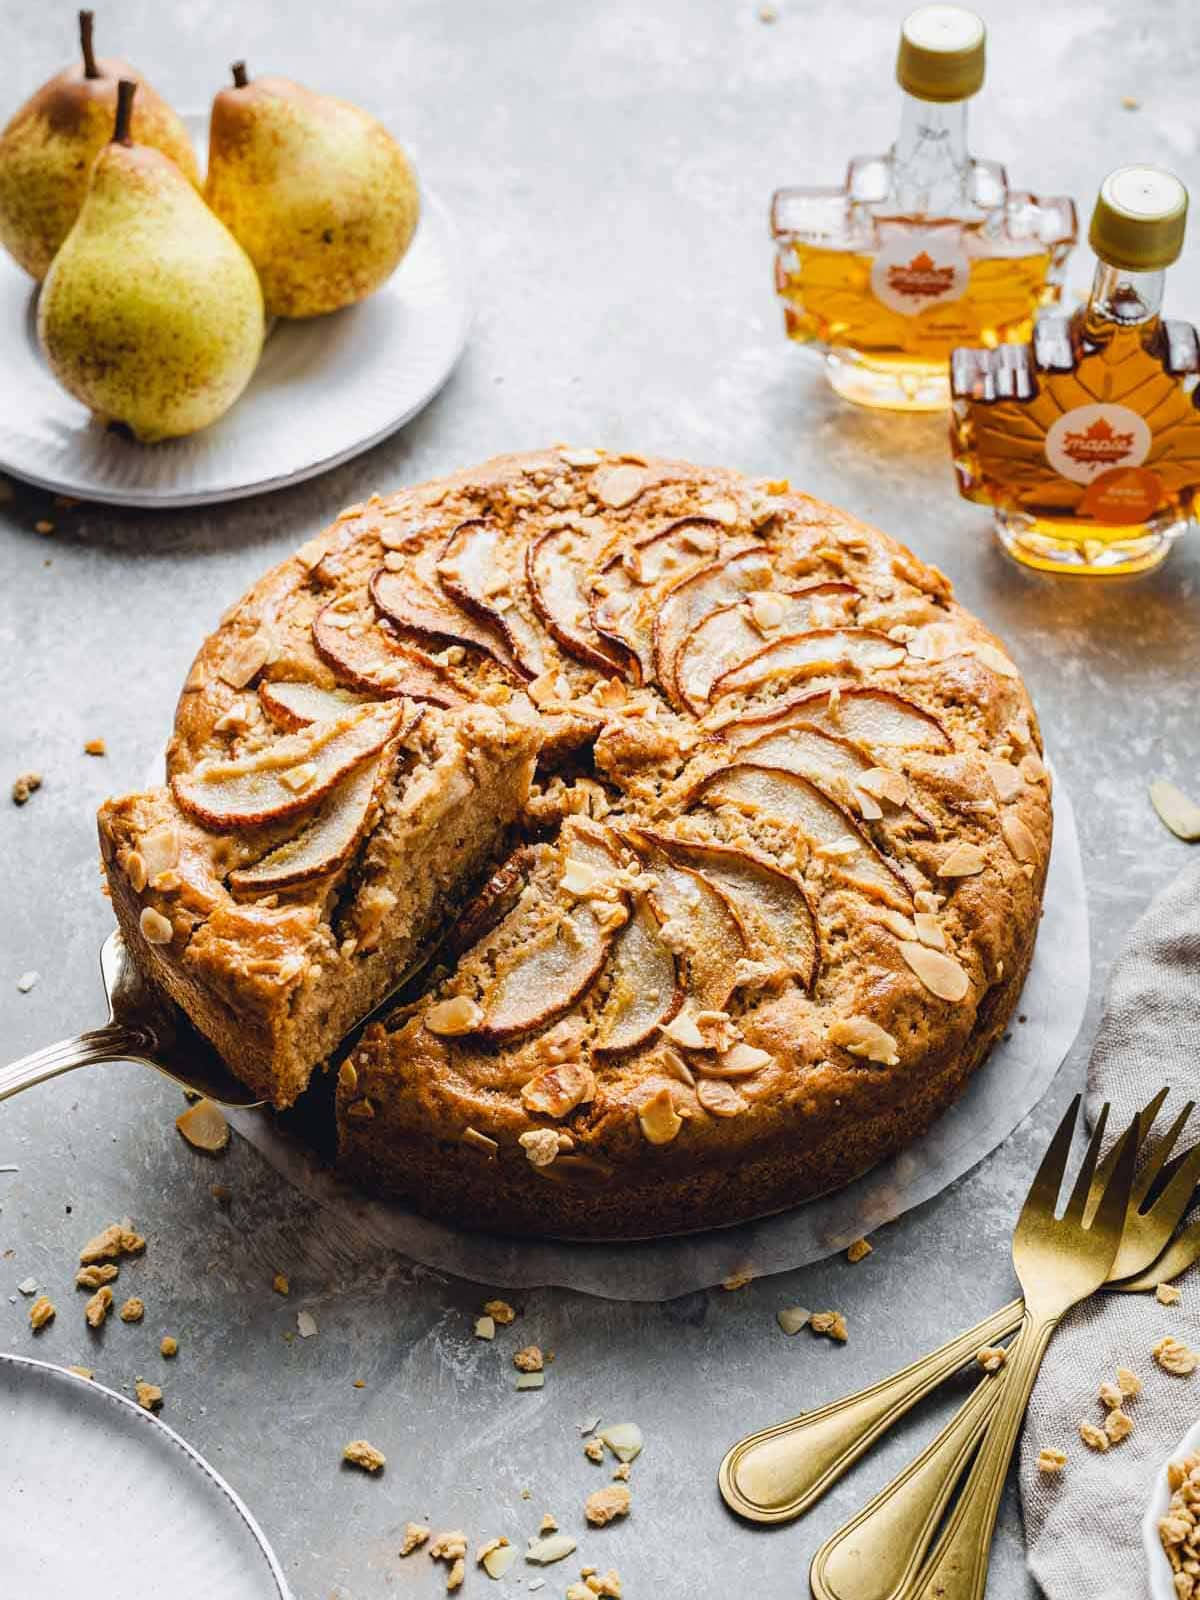 A side view of a pear cake with one slice being taken out.